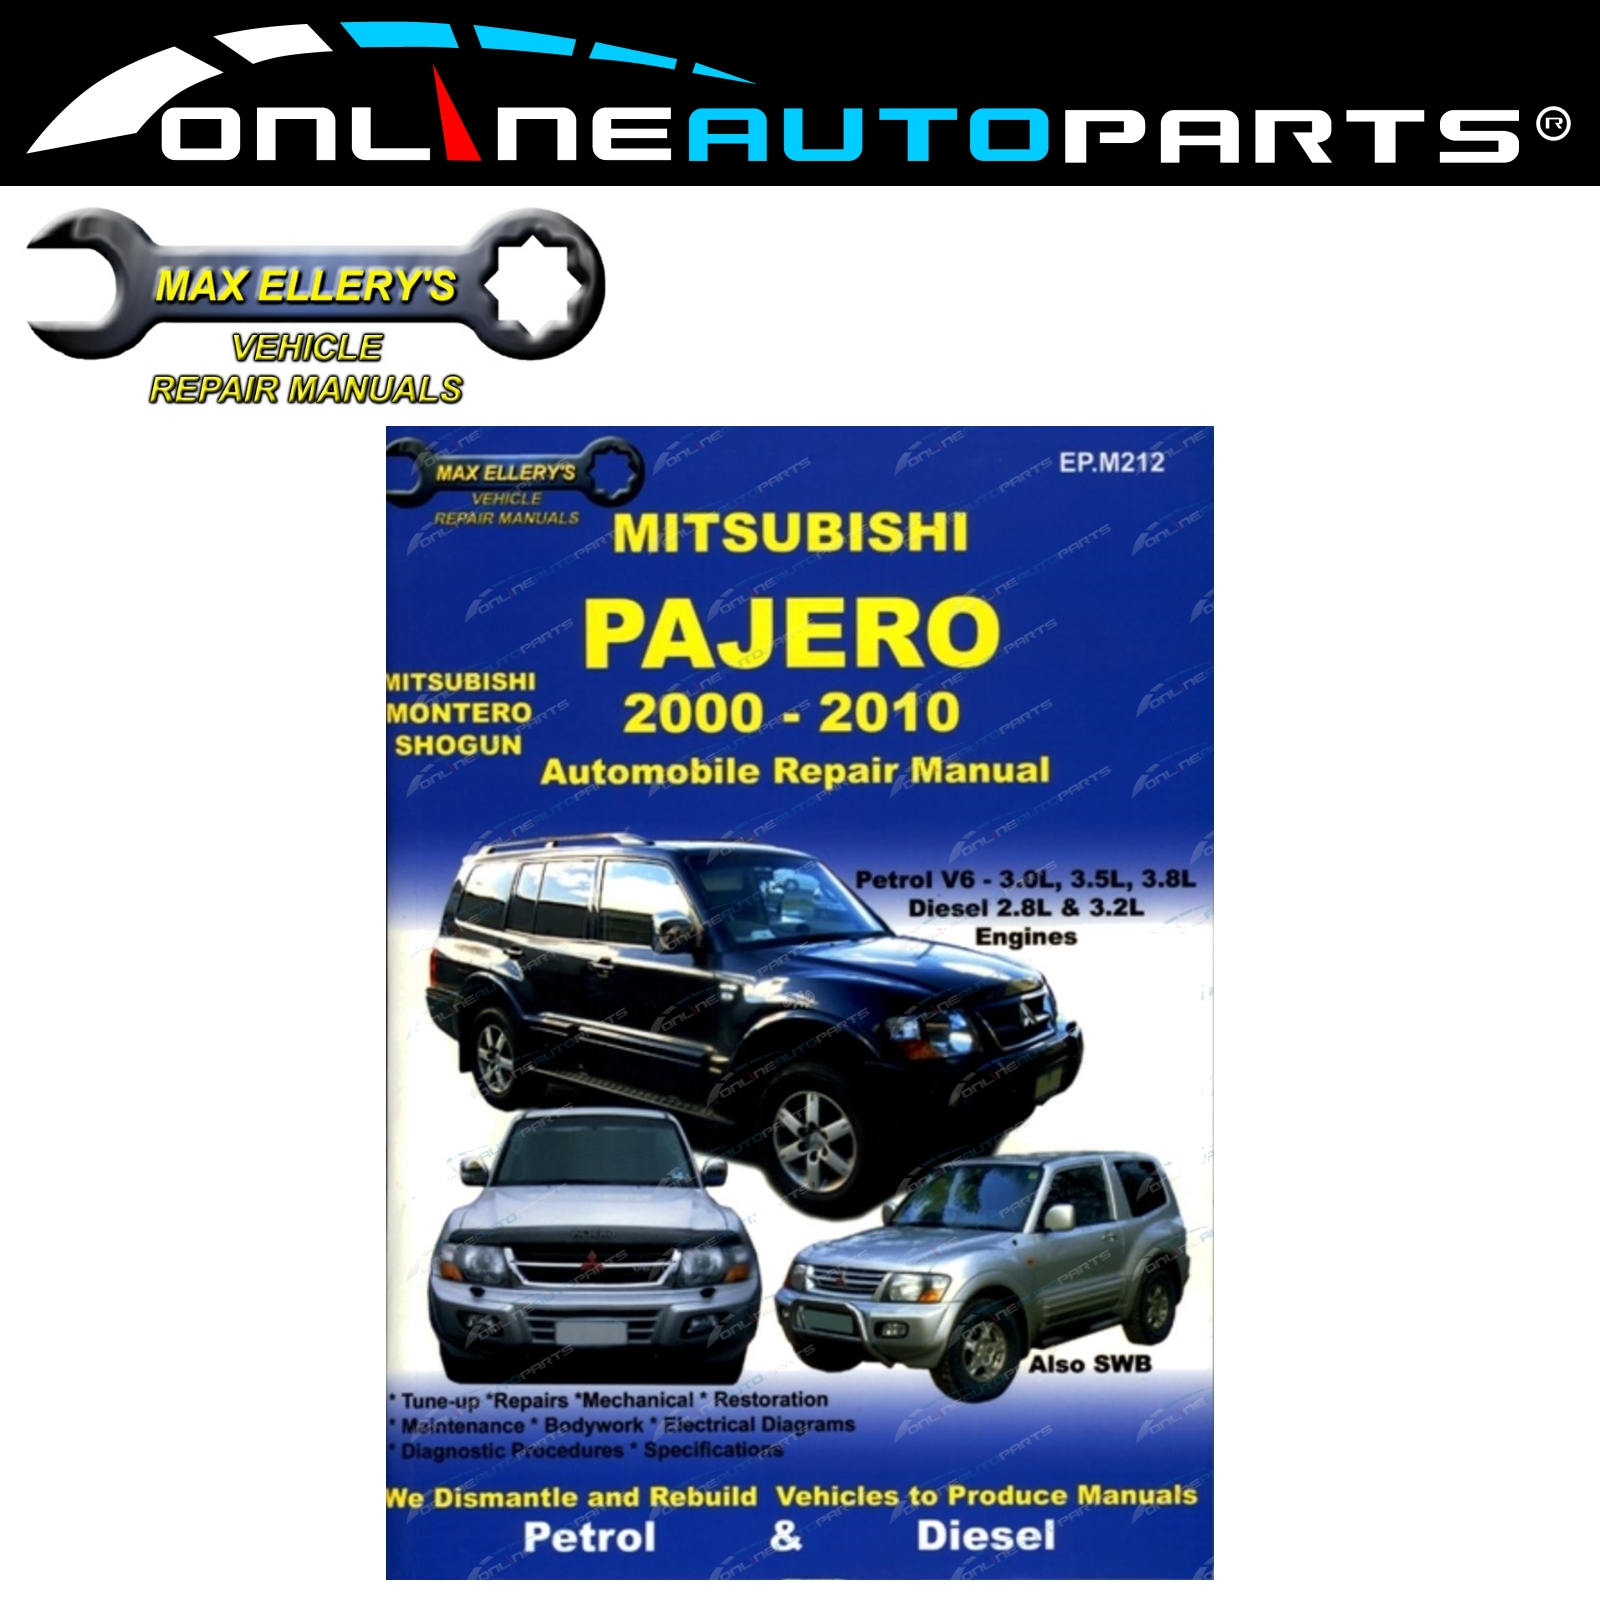 hight resolution of car repair book mitsubishi pajero nm np ns nt 2000 10 max ellery workshop manual